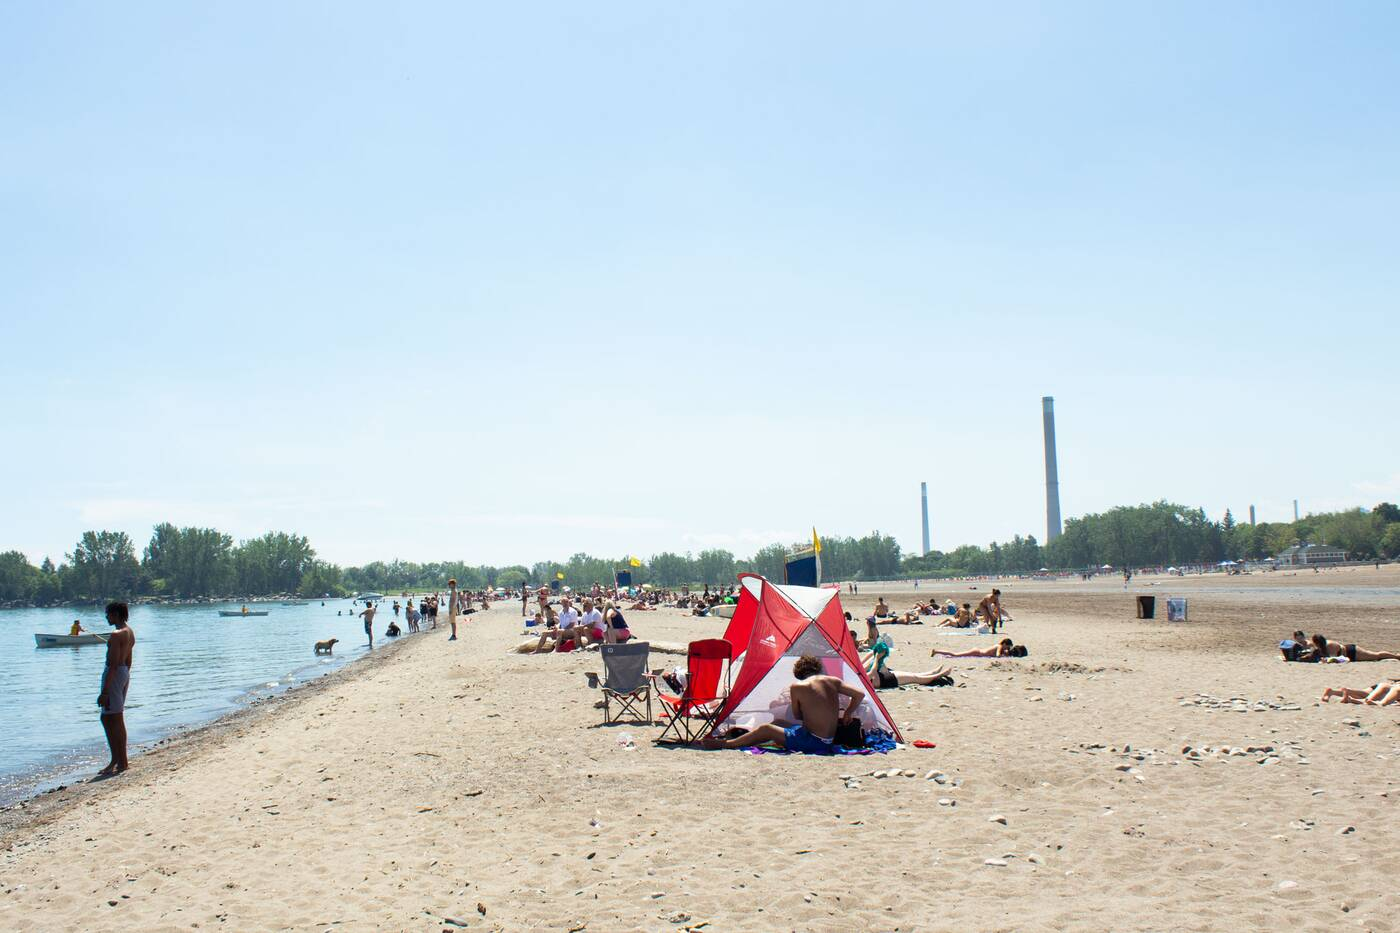 woodbine beach toornto